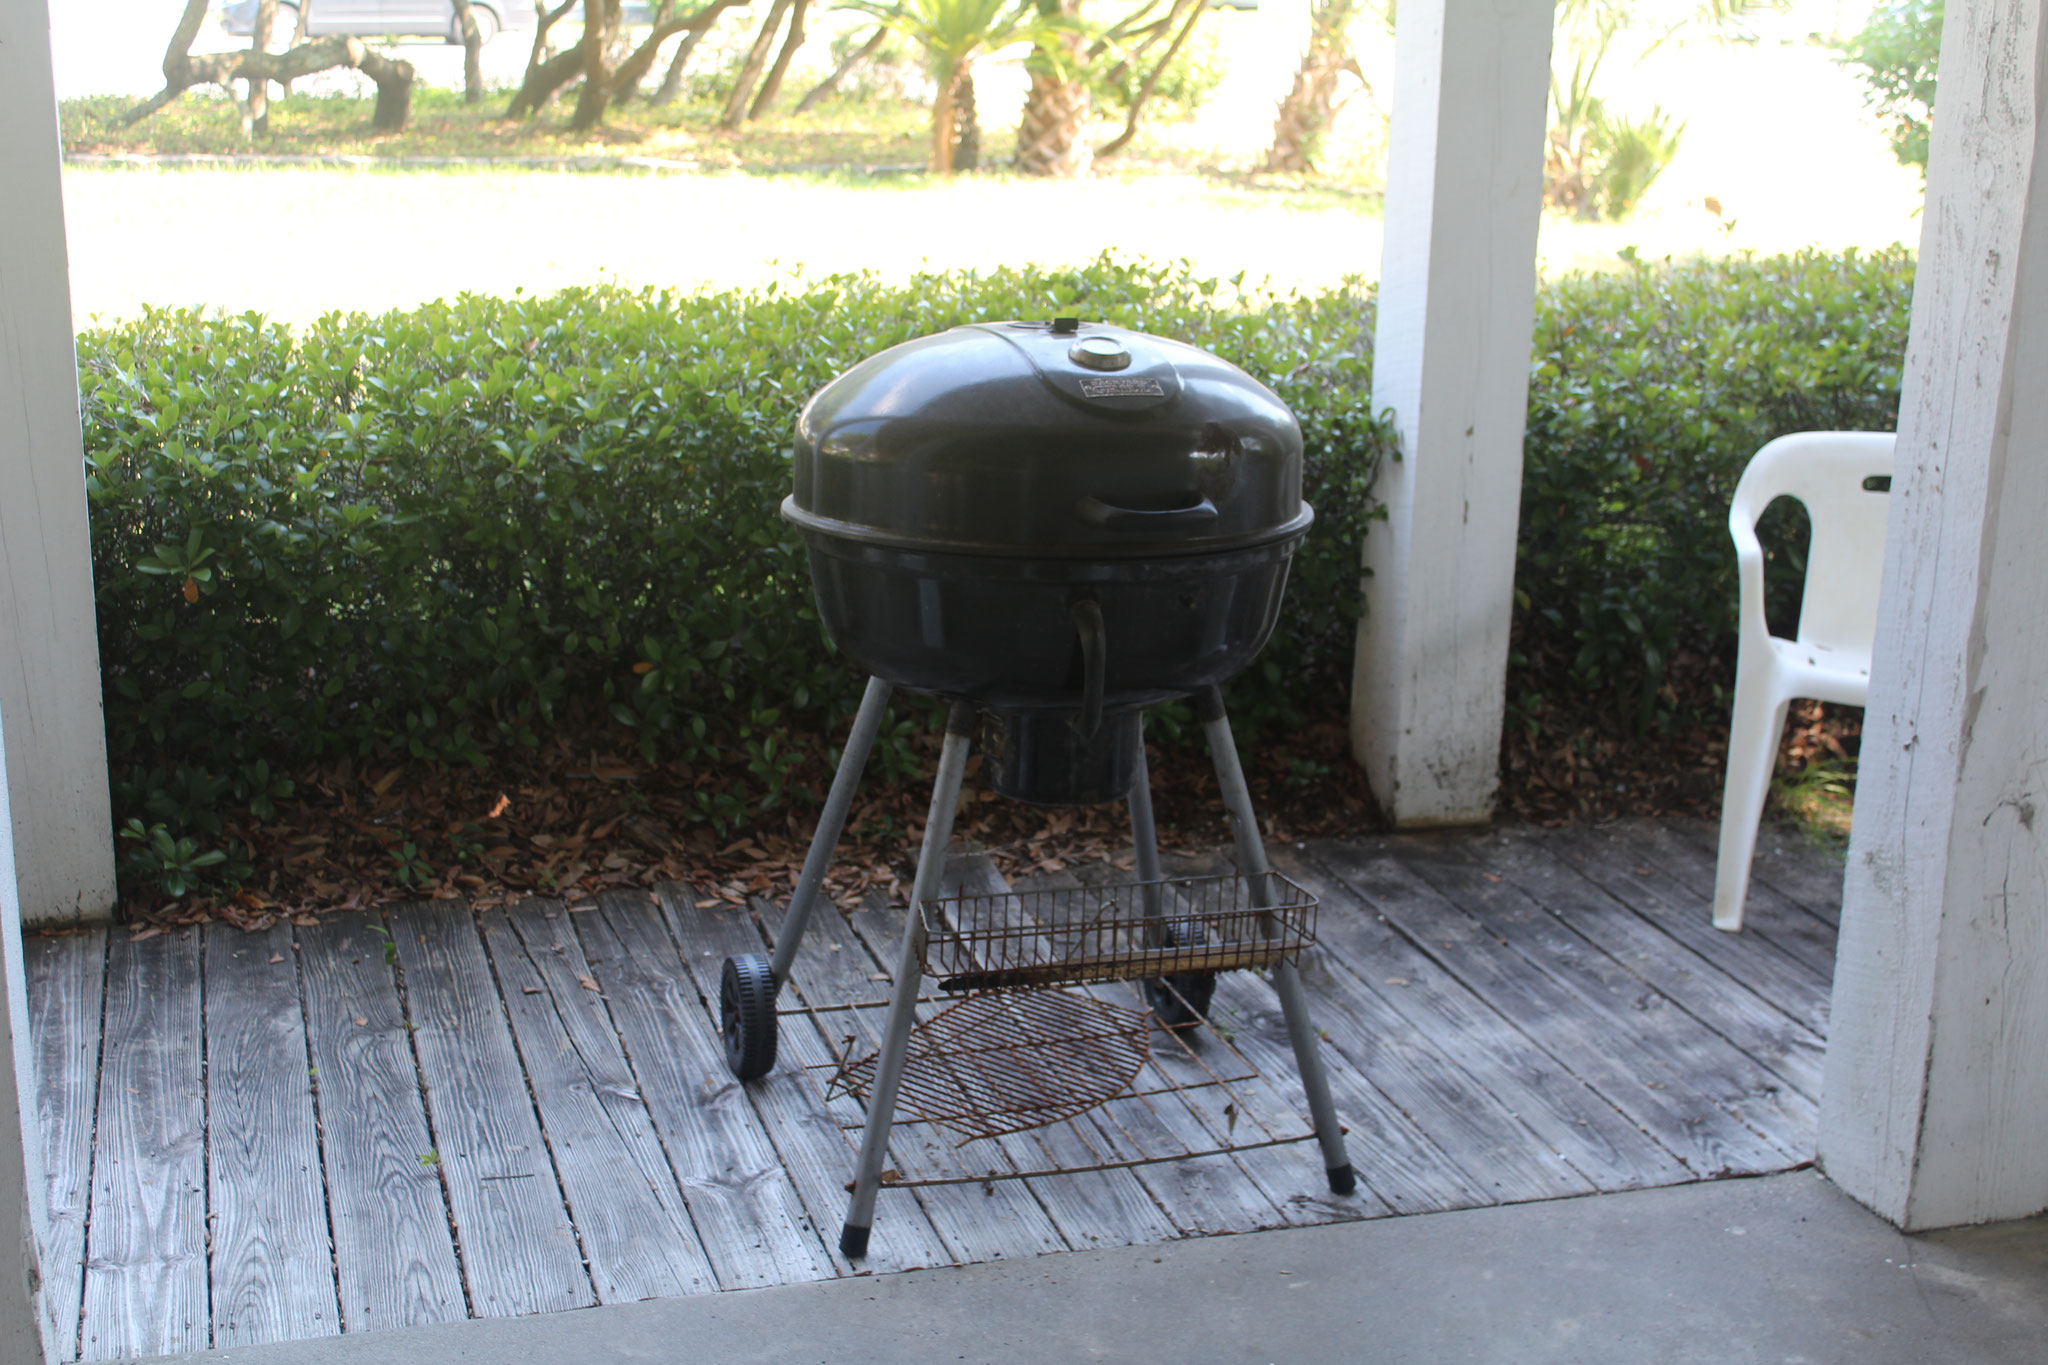 The grill.